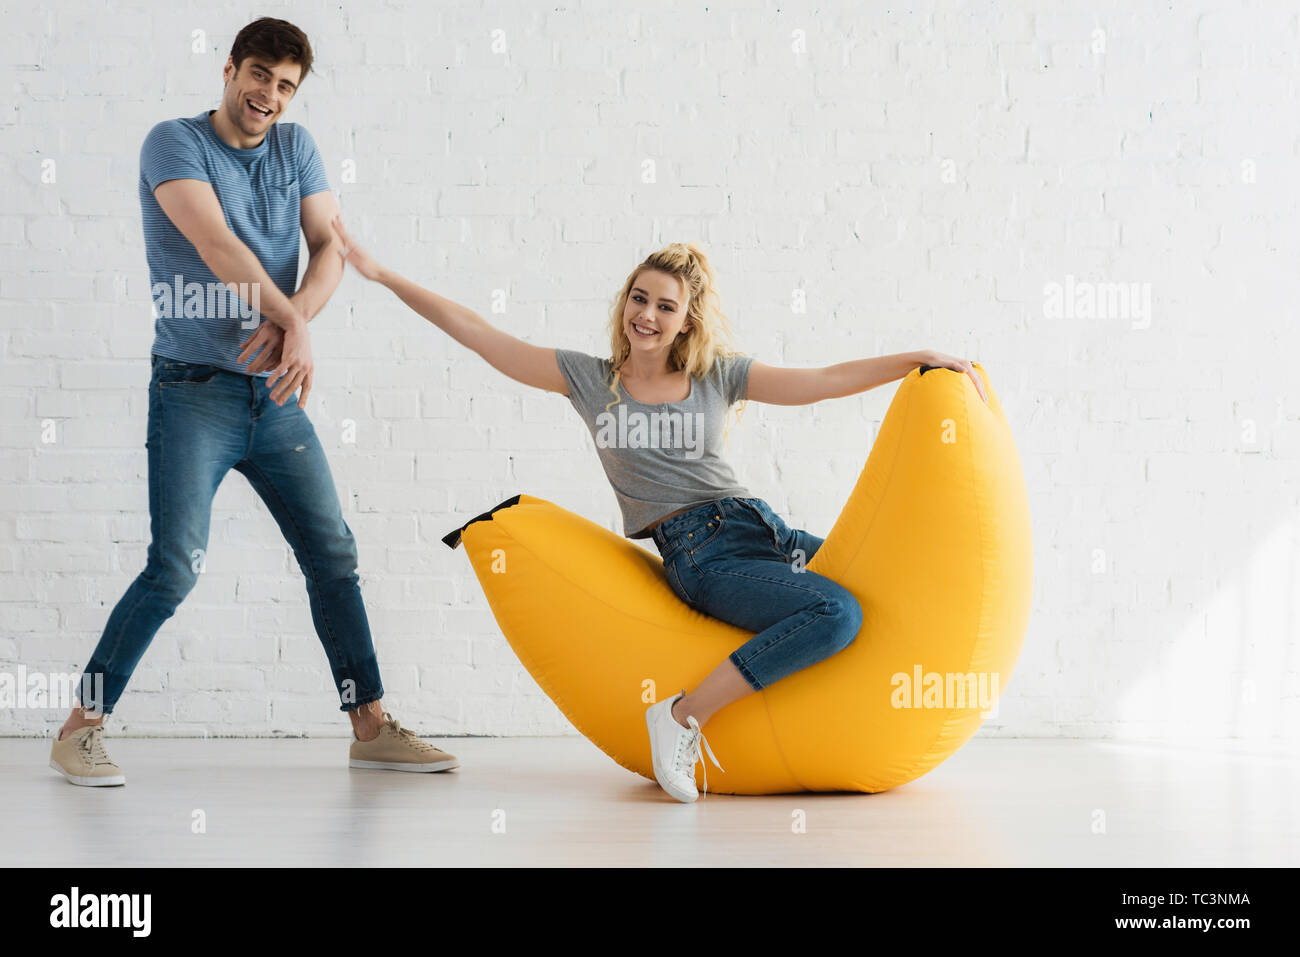 cheerful woman sitting on yellow bean bag chair and touching handsome man - Stock Image